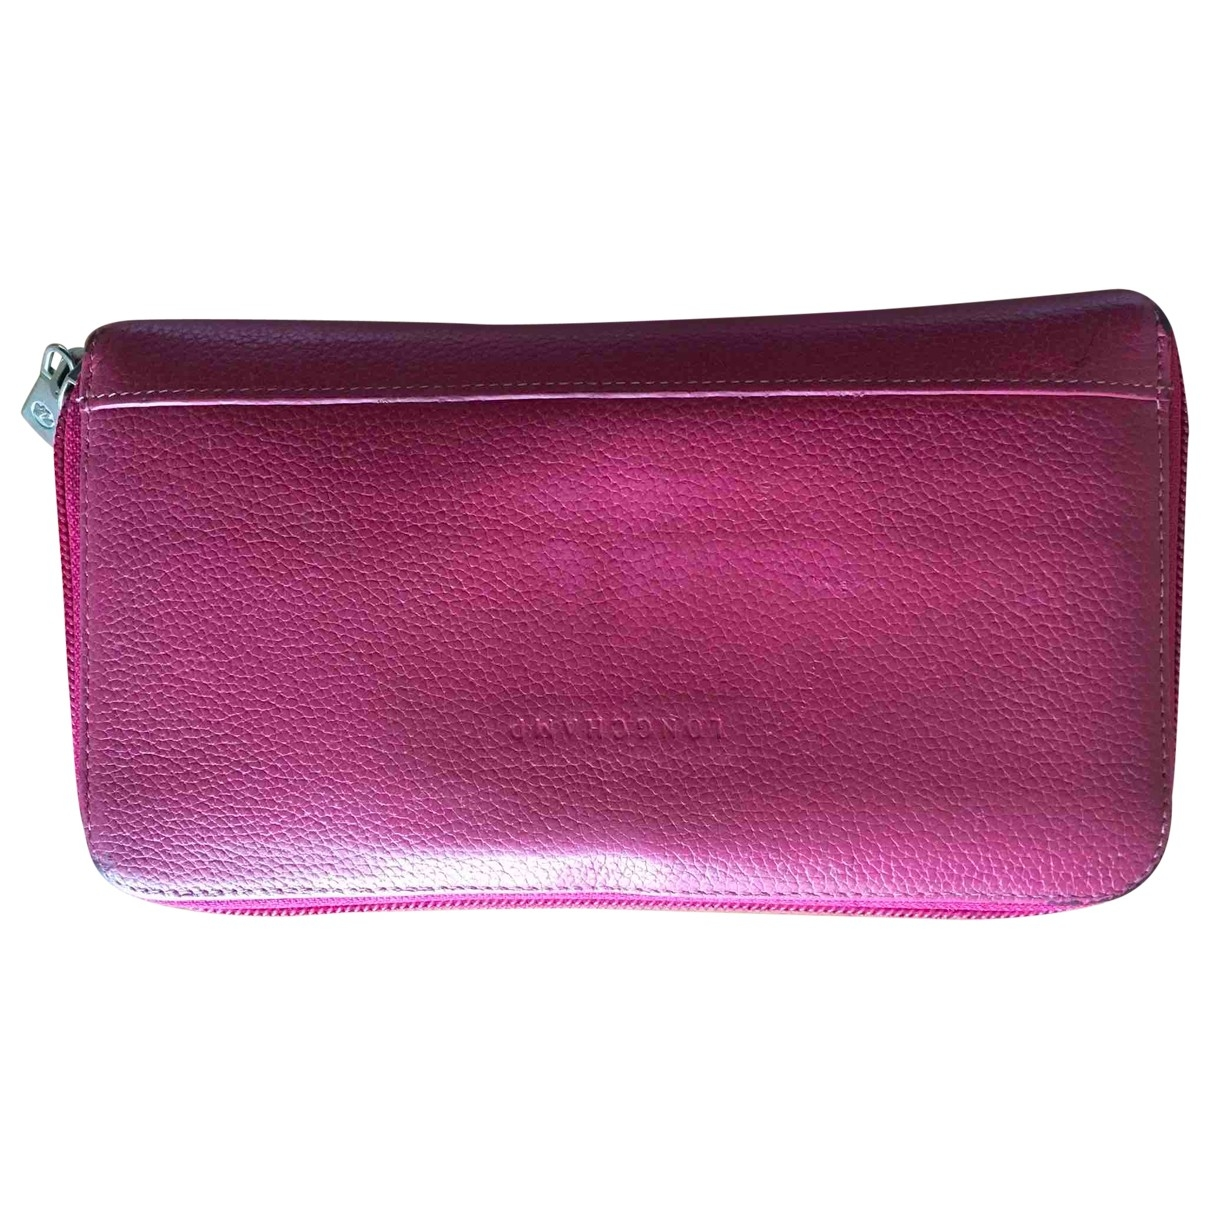 Longchamp \N Pink Leather wallet for Women \N